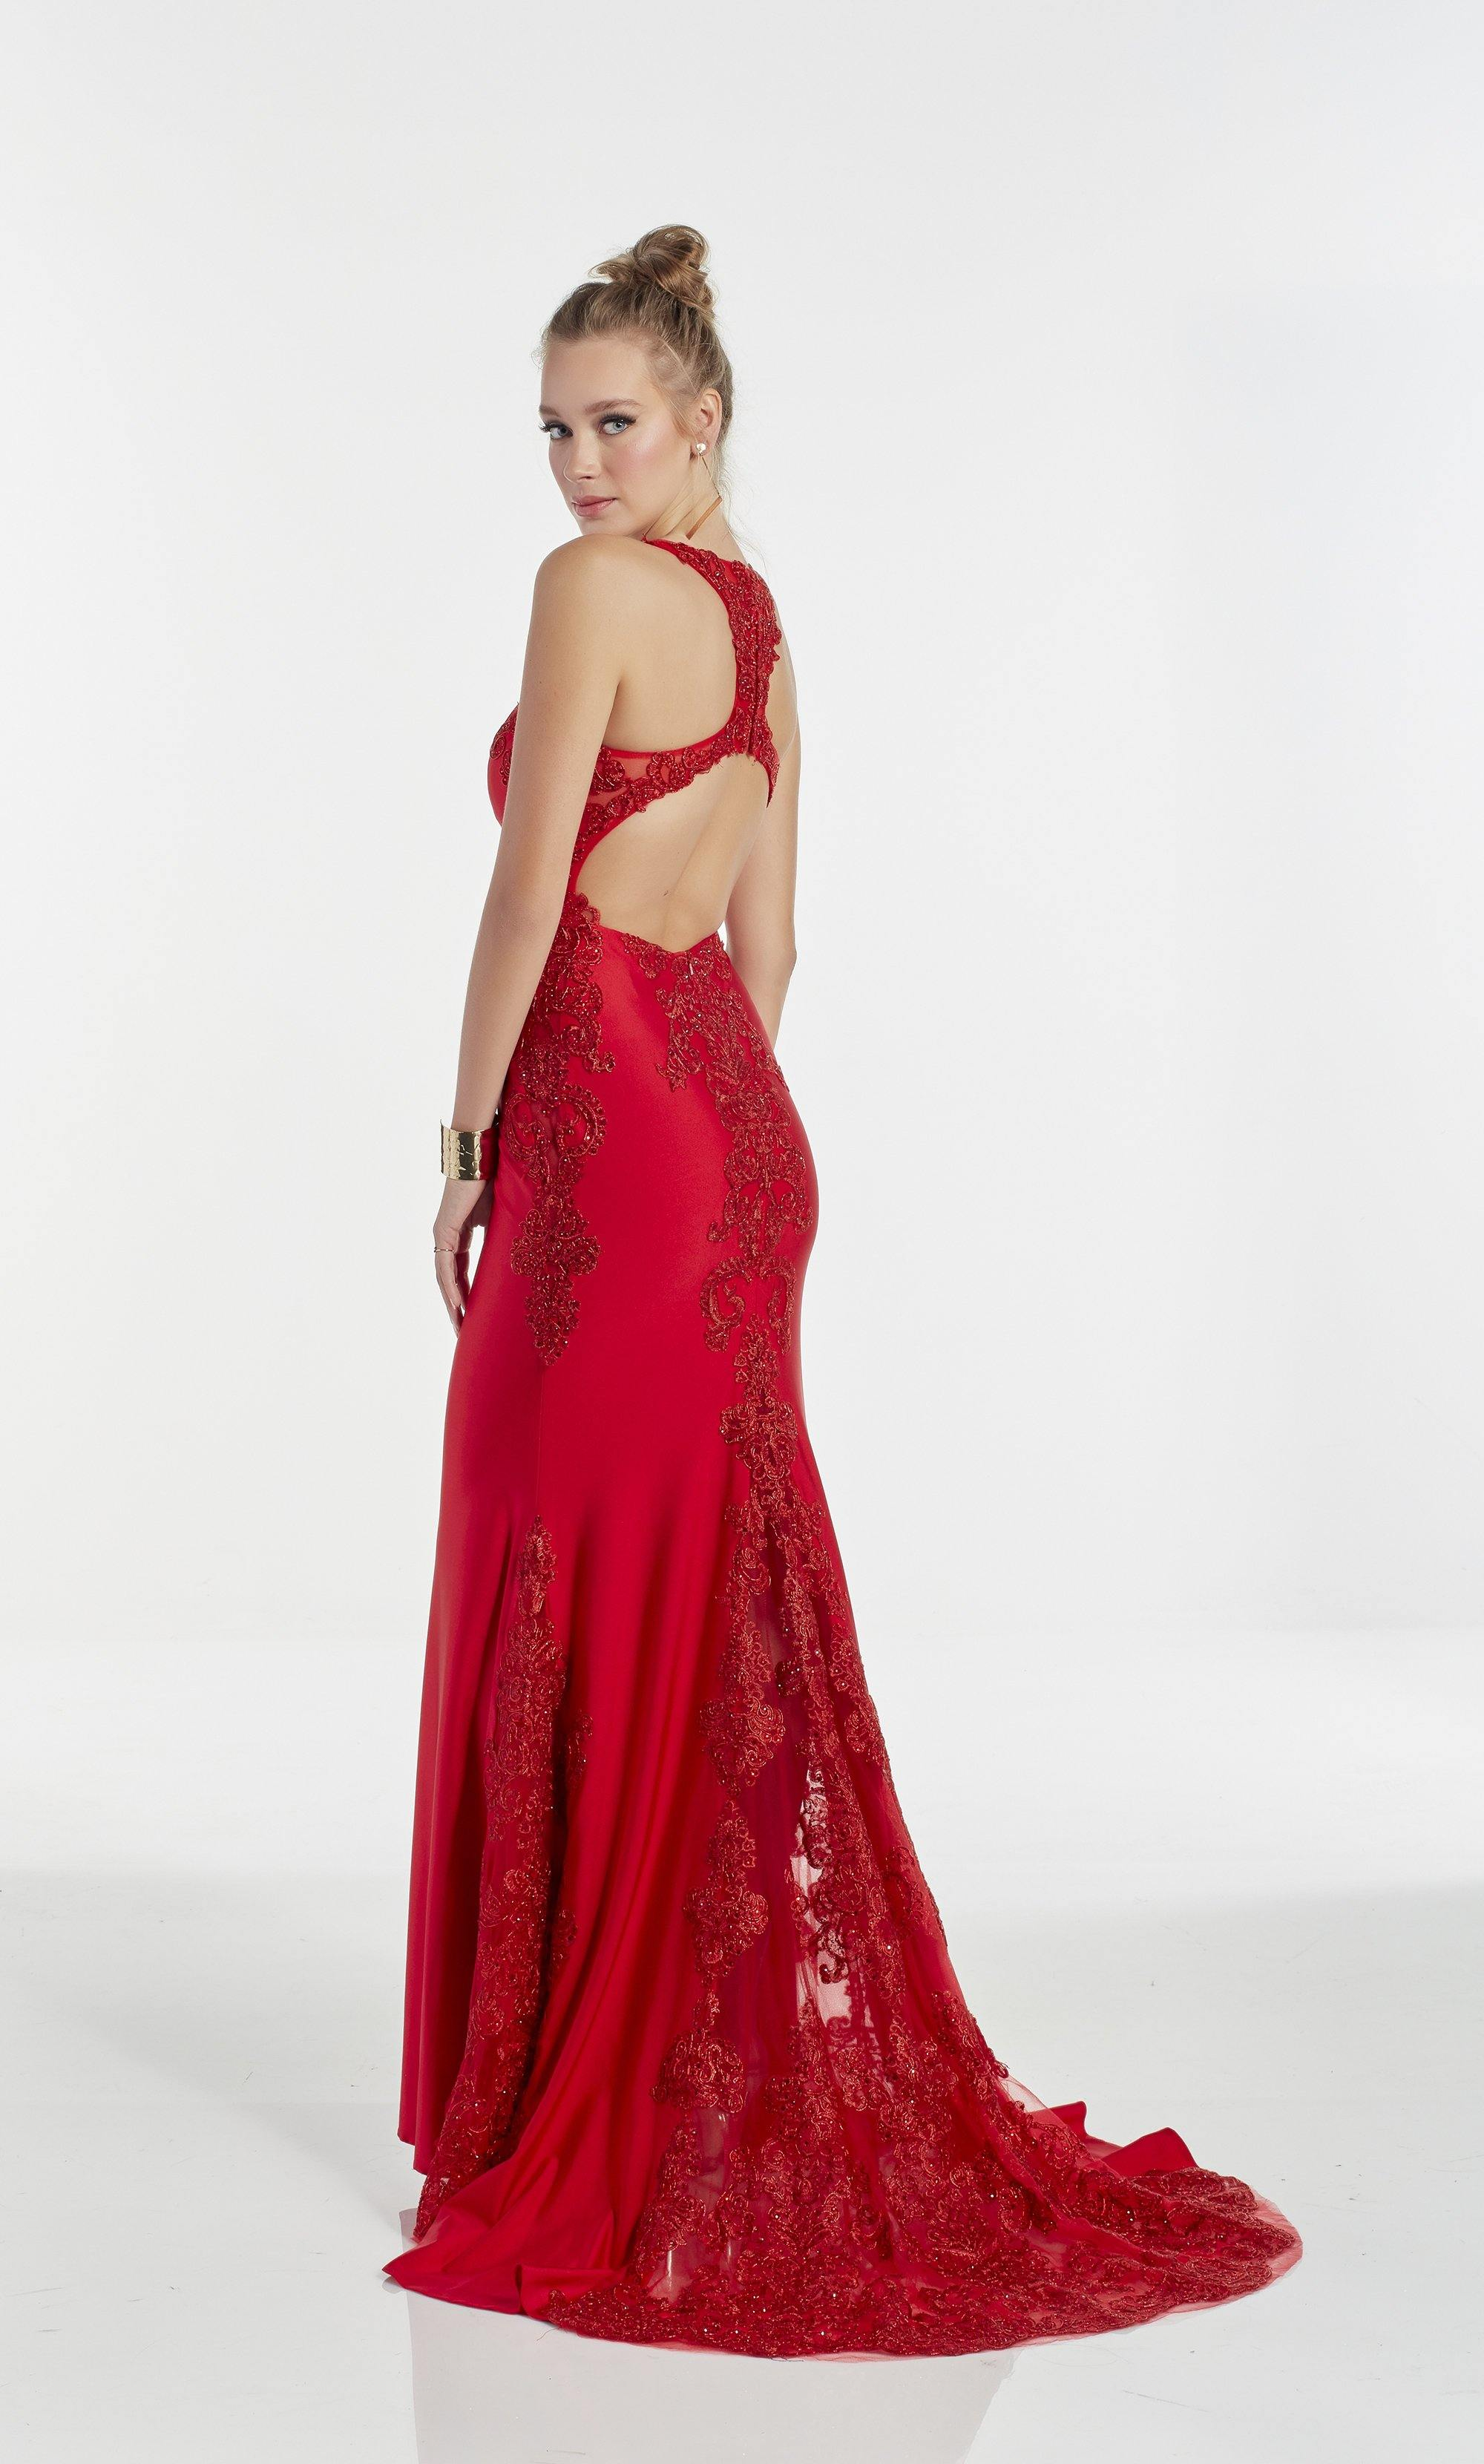 Red fit and flare slinky prom dress with a scoop neckline and sheer lace accents